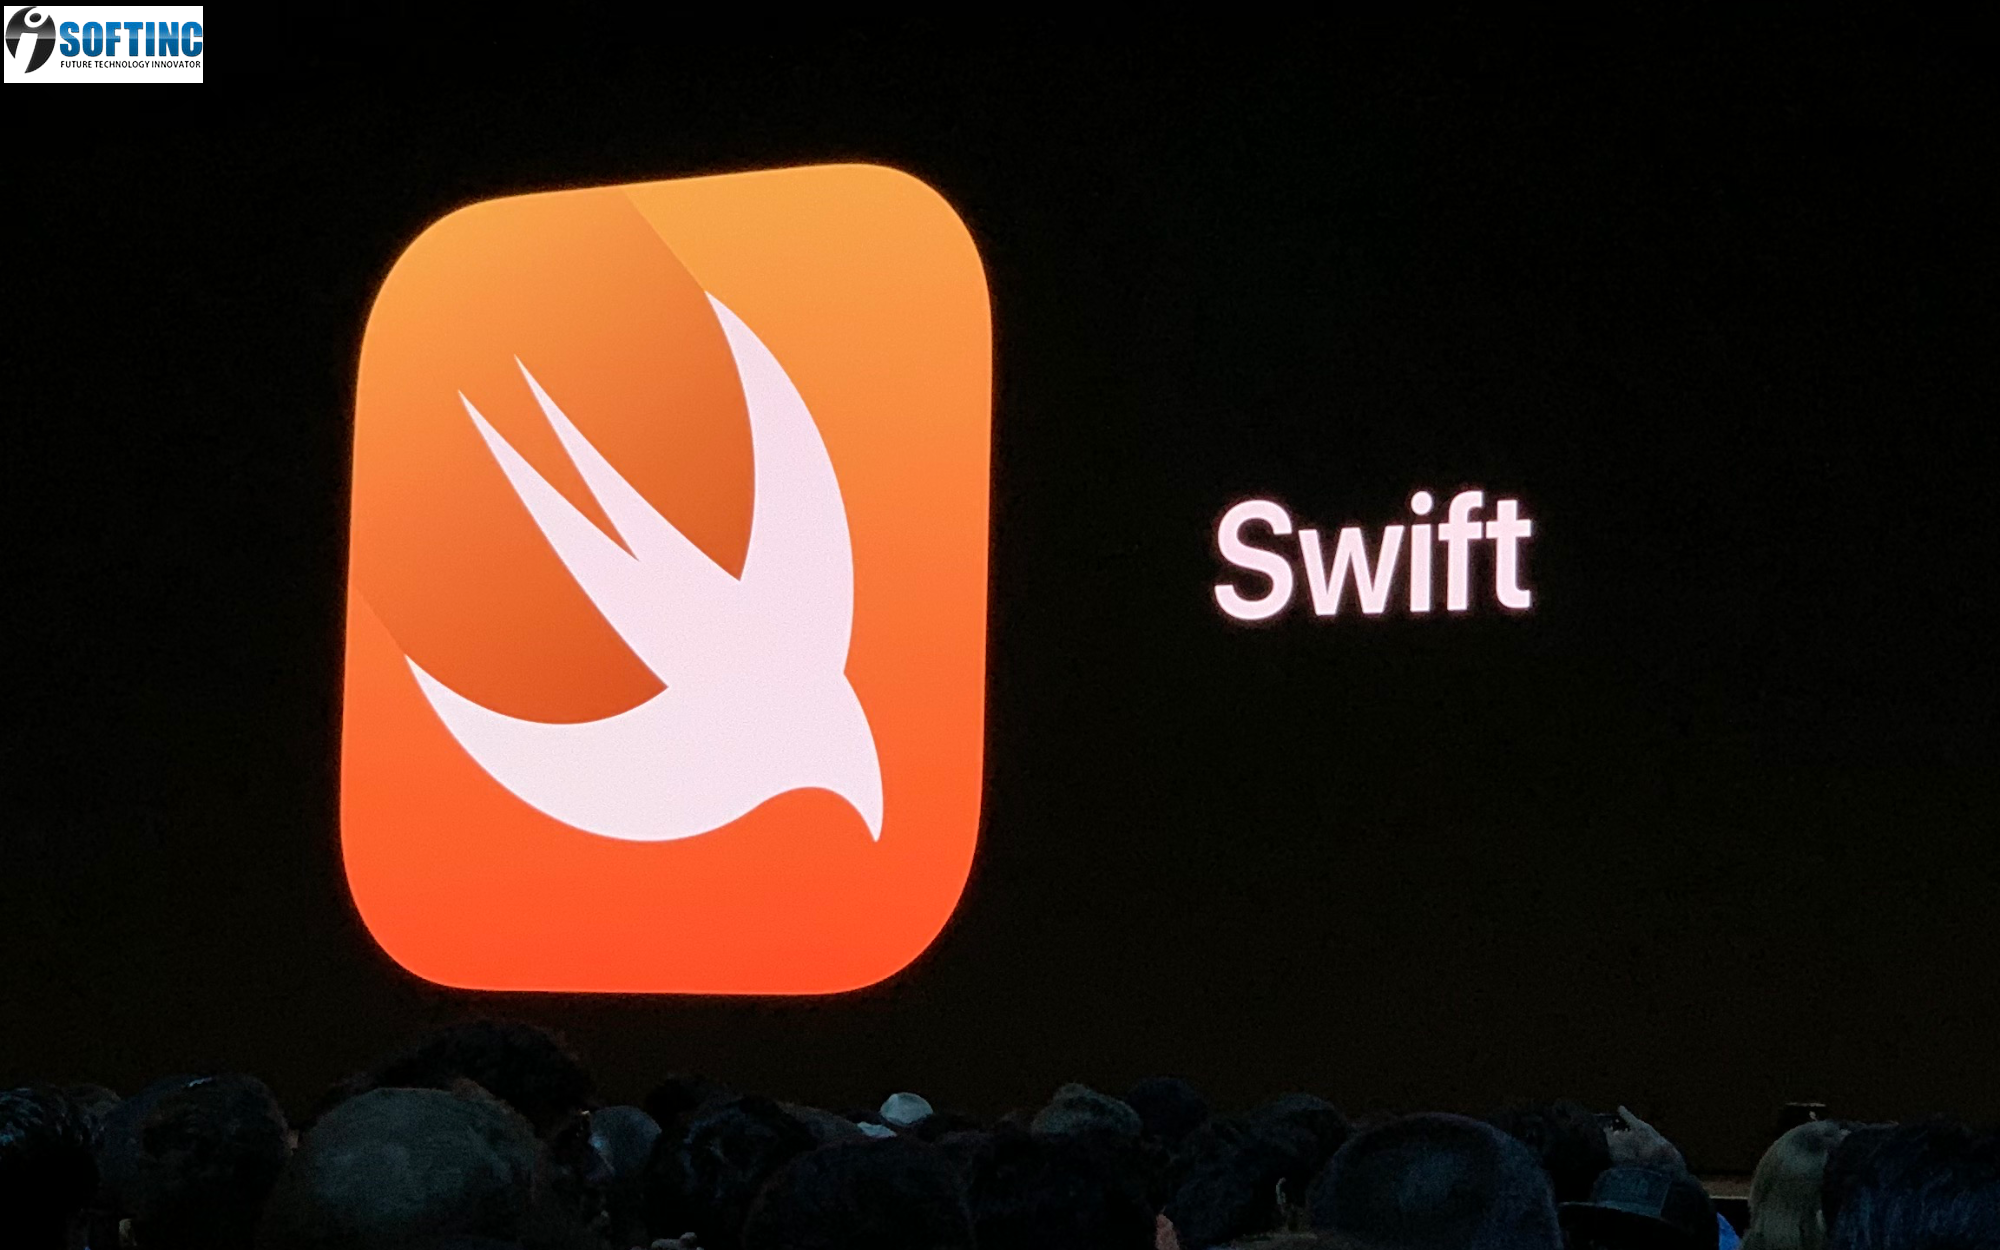 All About Swift